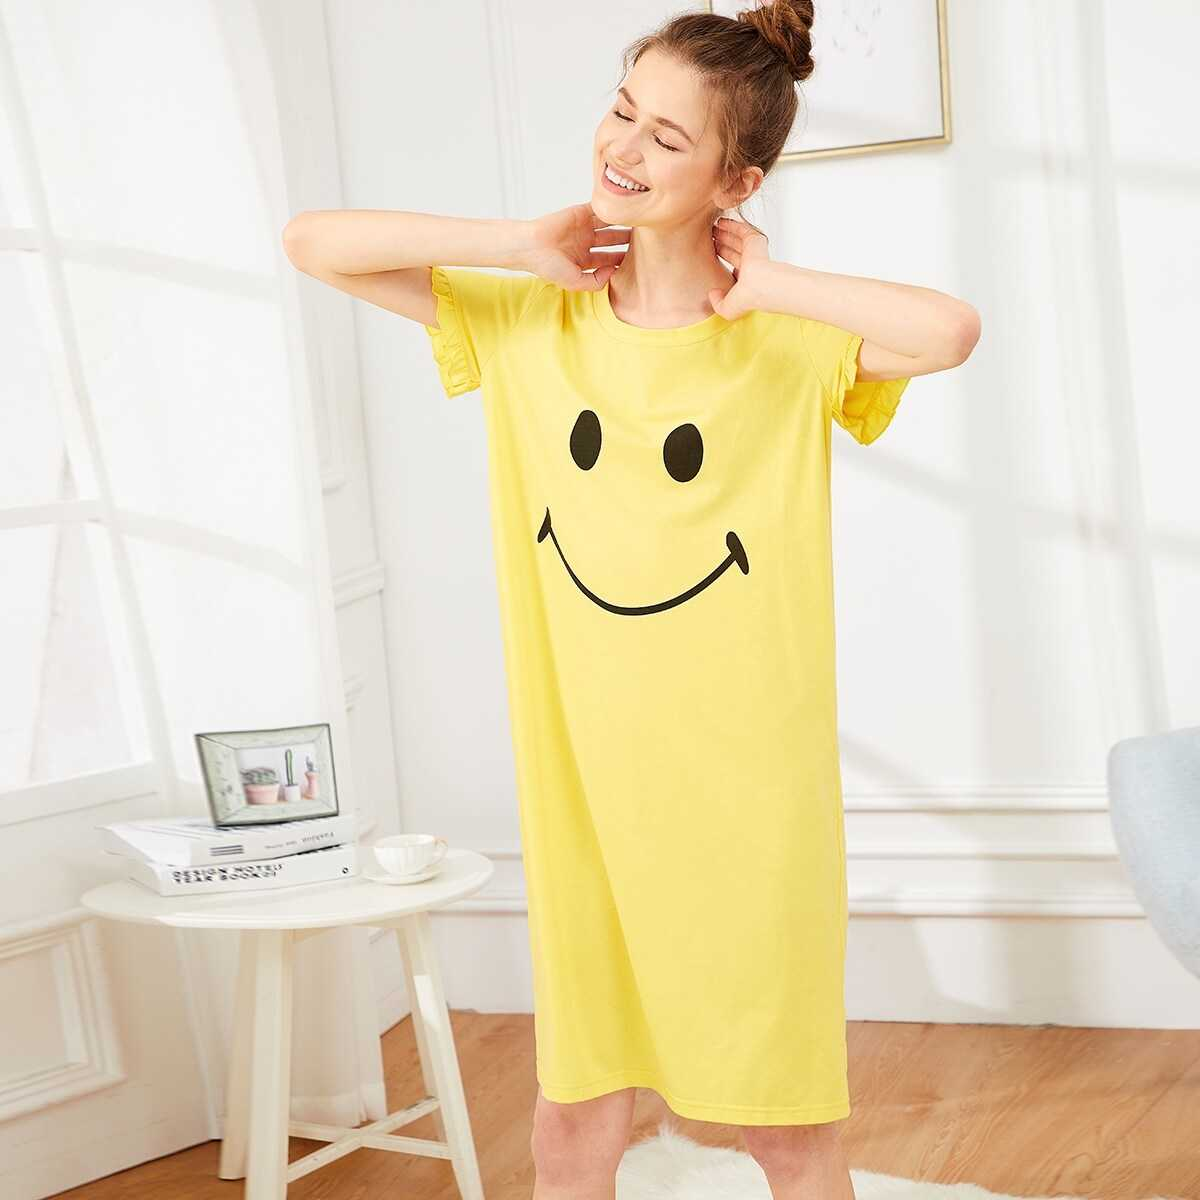 Ruffle Sleeve Smile Print Night Dress in Yellow by ROMWE on GOOFASH